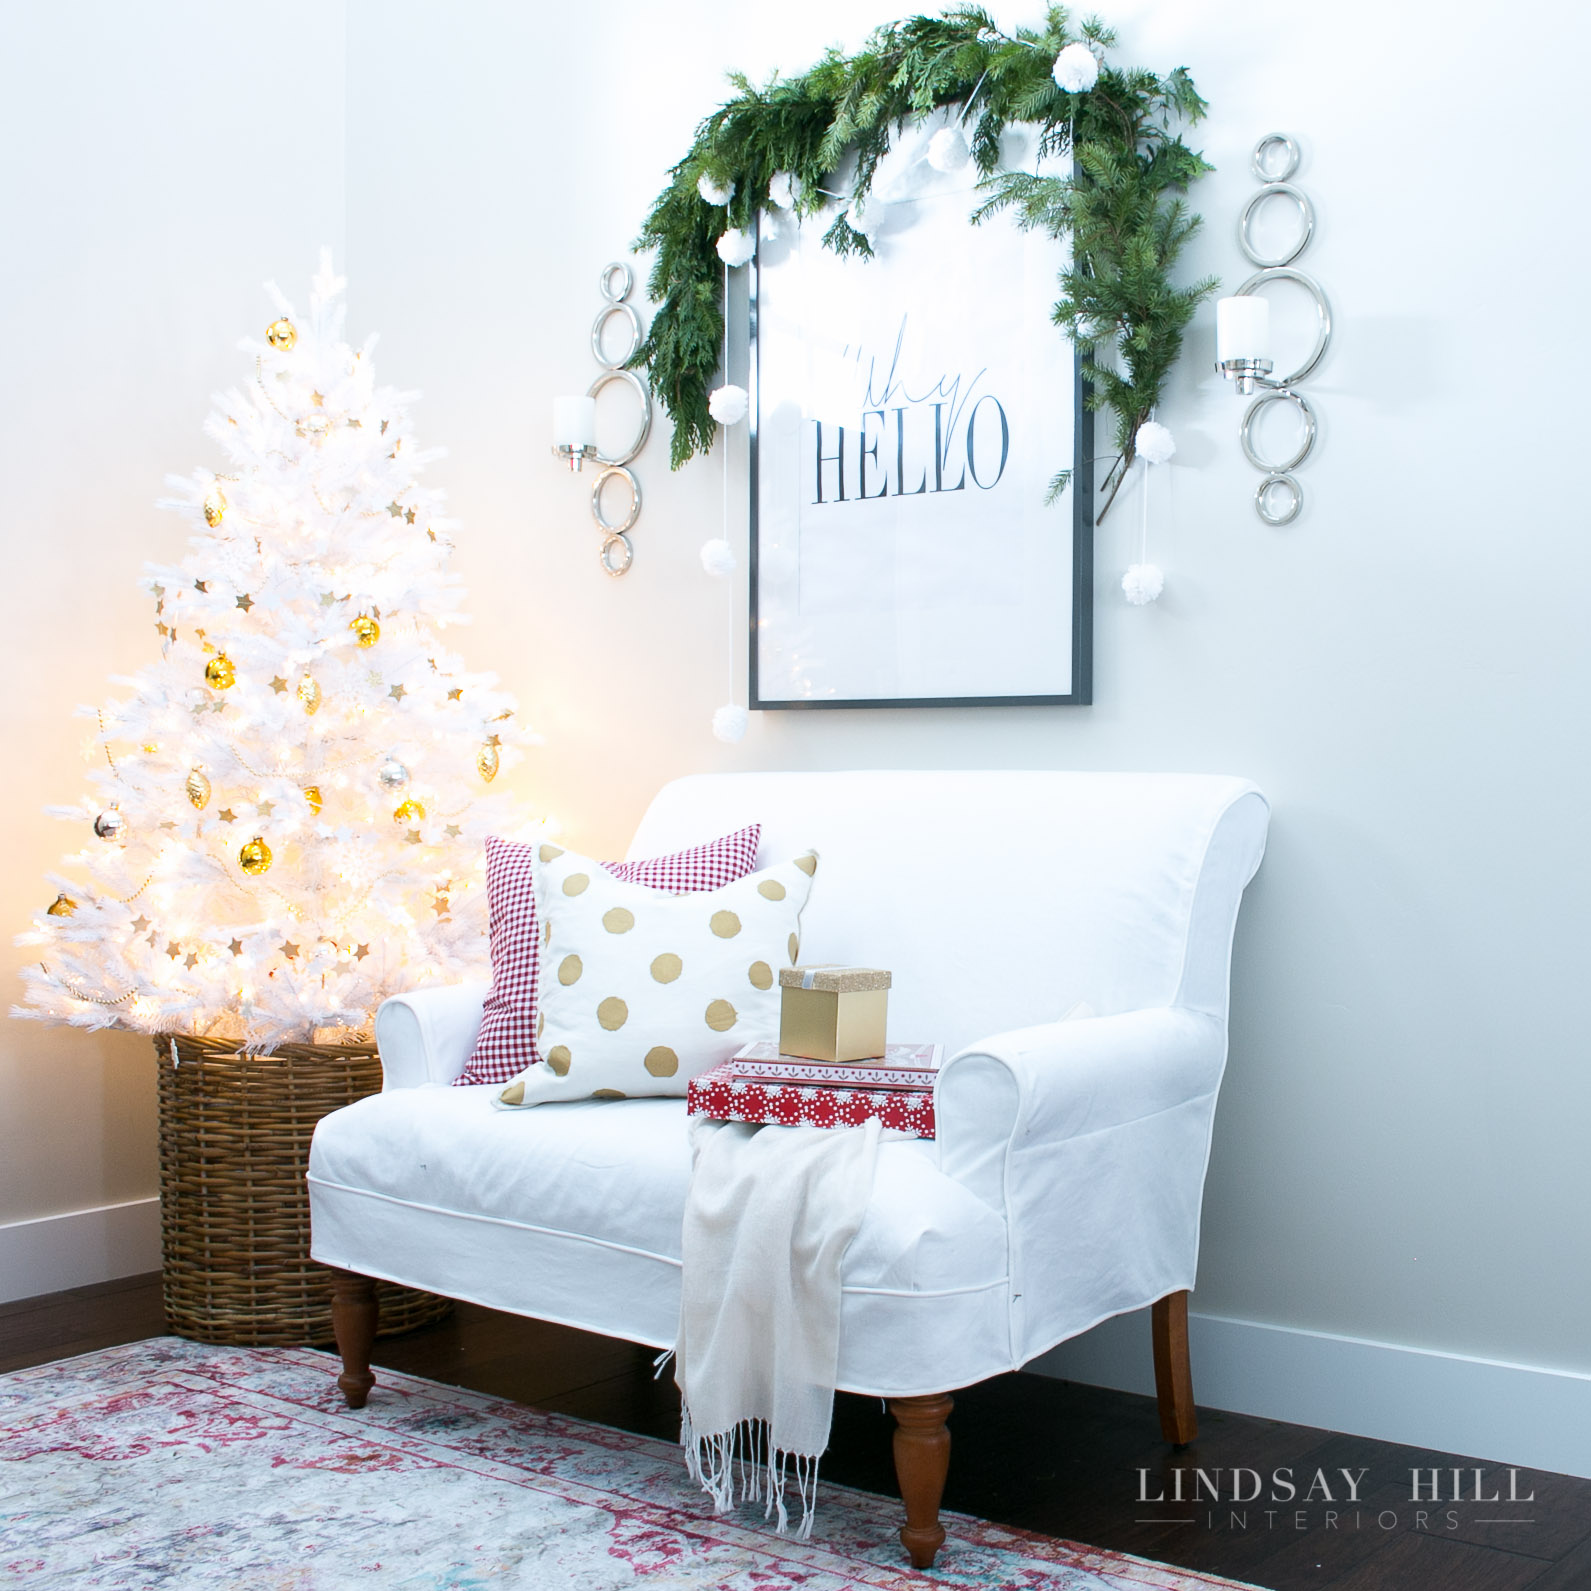 lindsay hill interiors holiday entry